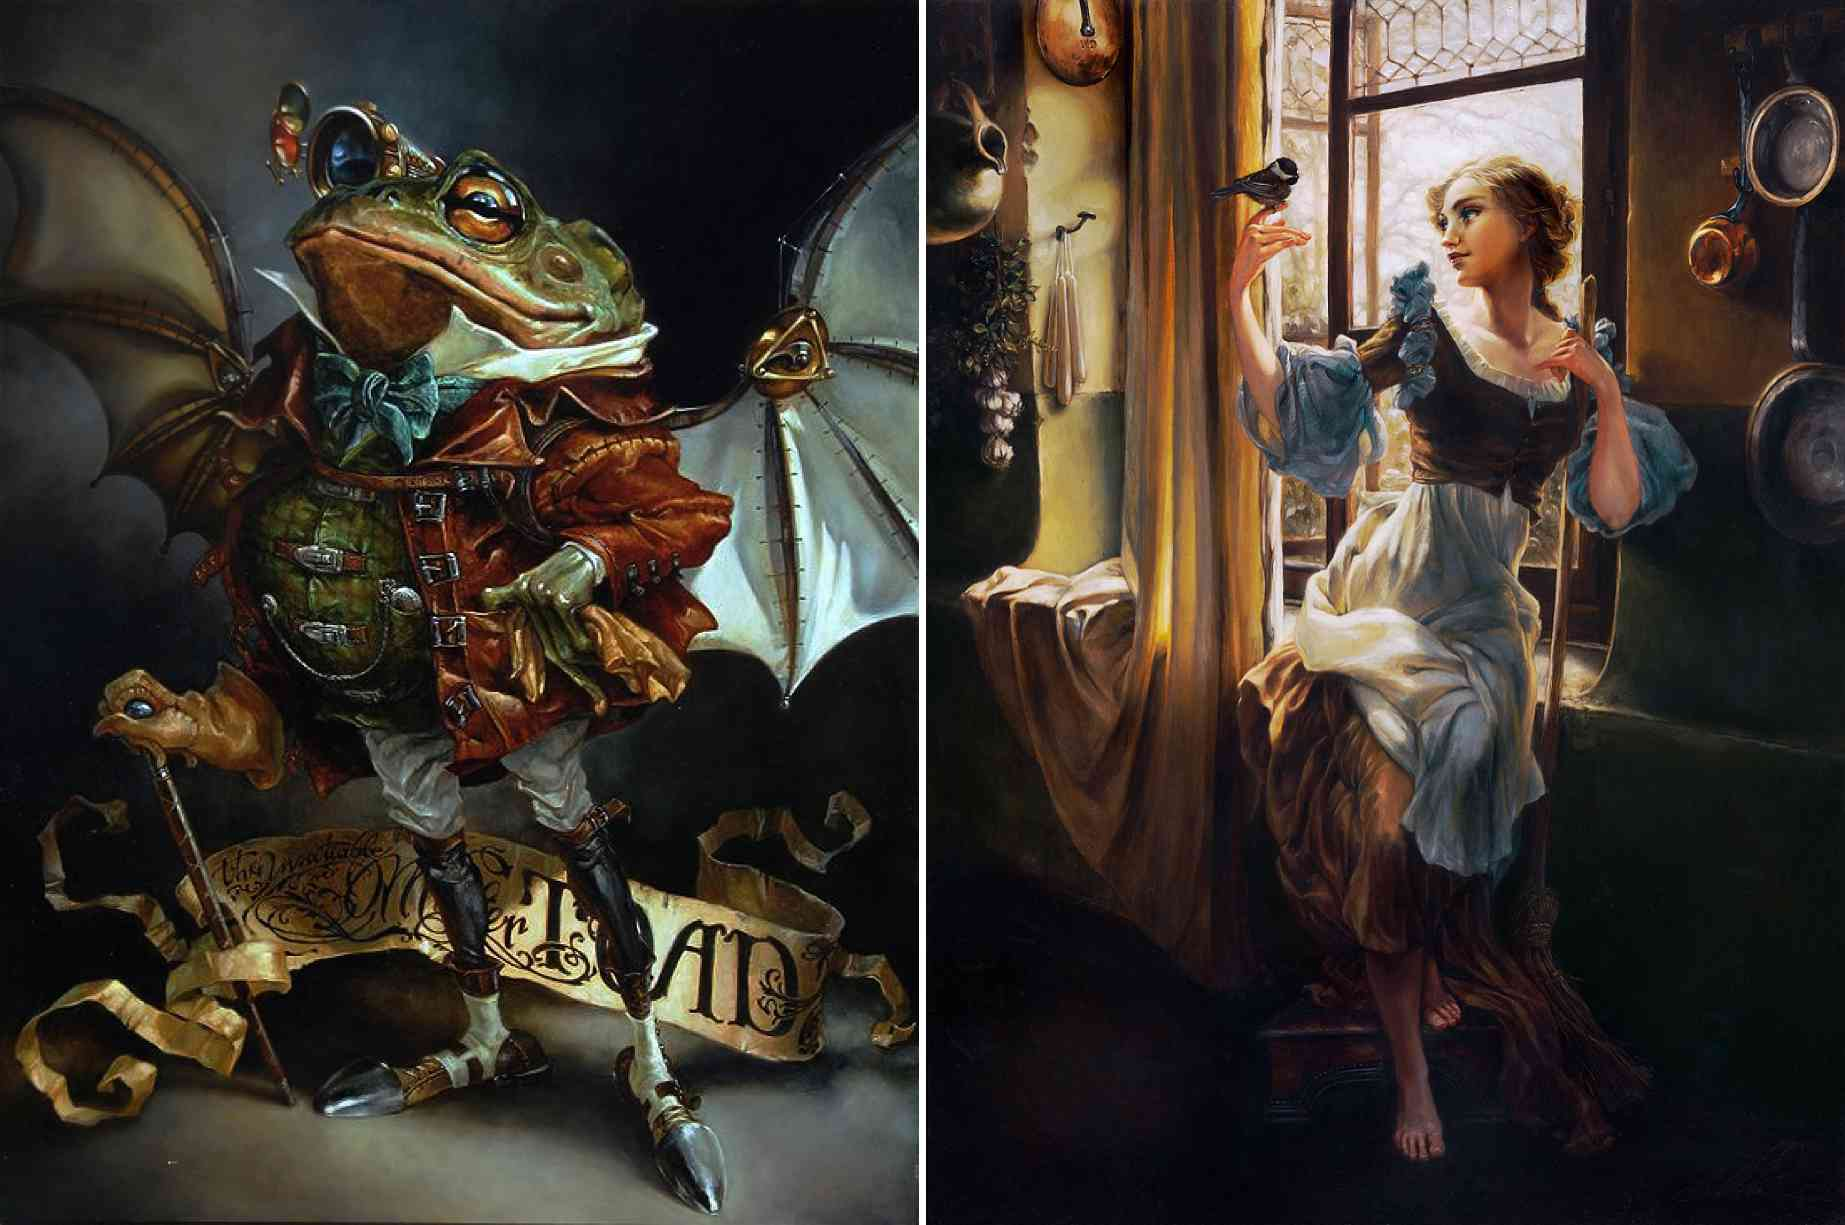 mr toad and cinderella realistic paintings